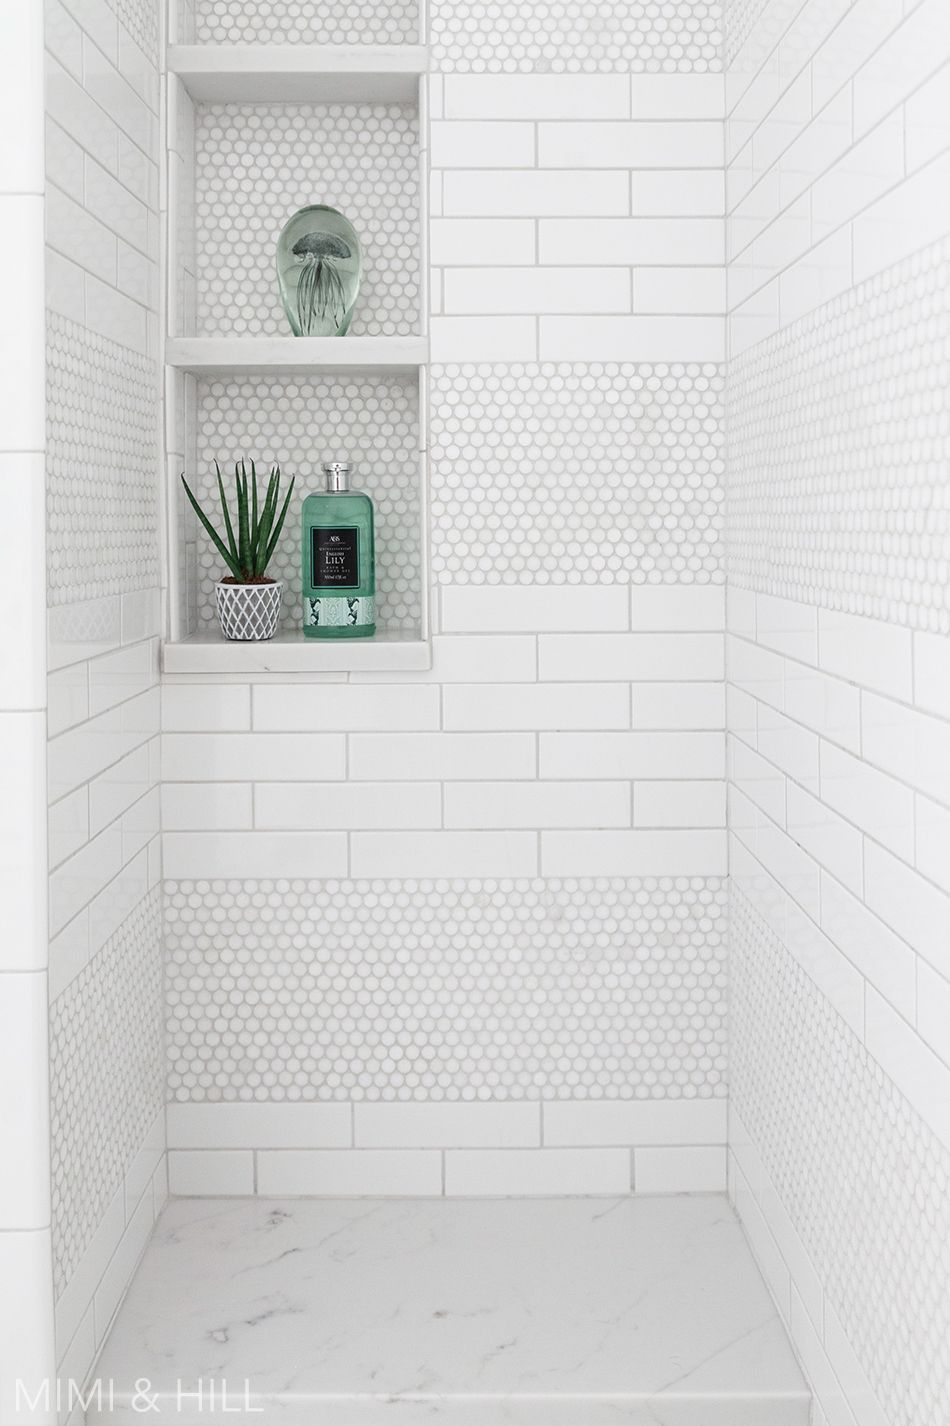 Pin By Jennie Hauck On Home In 2020 With Images Penny Tiles